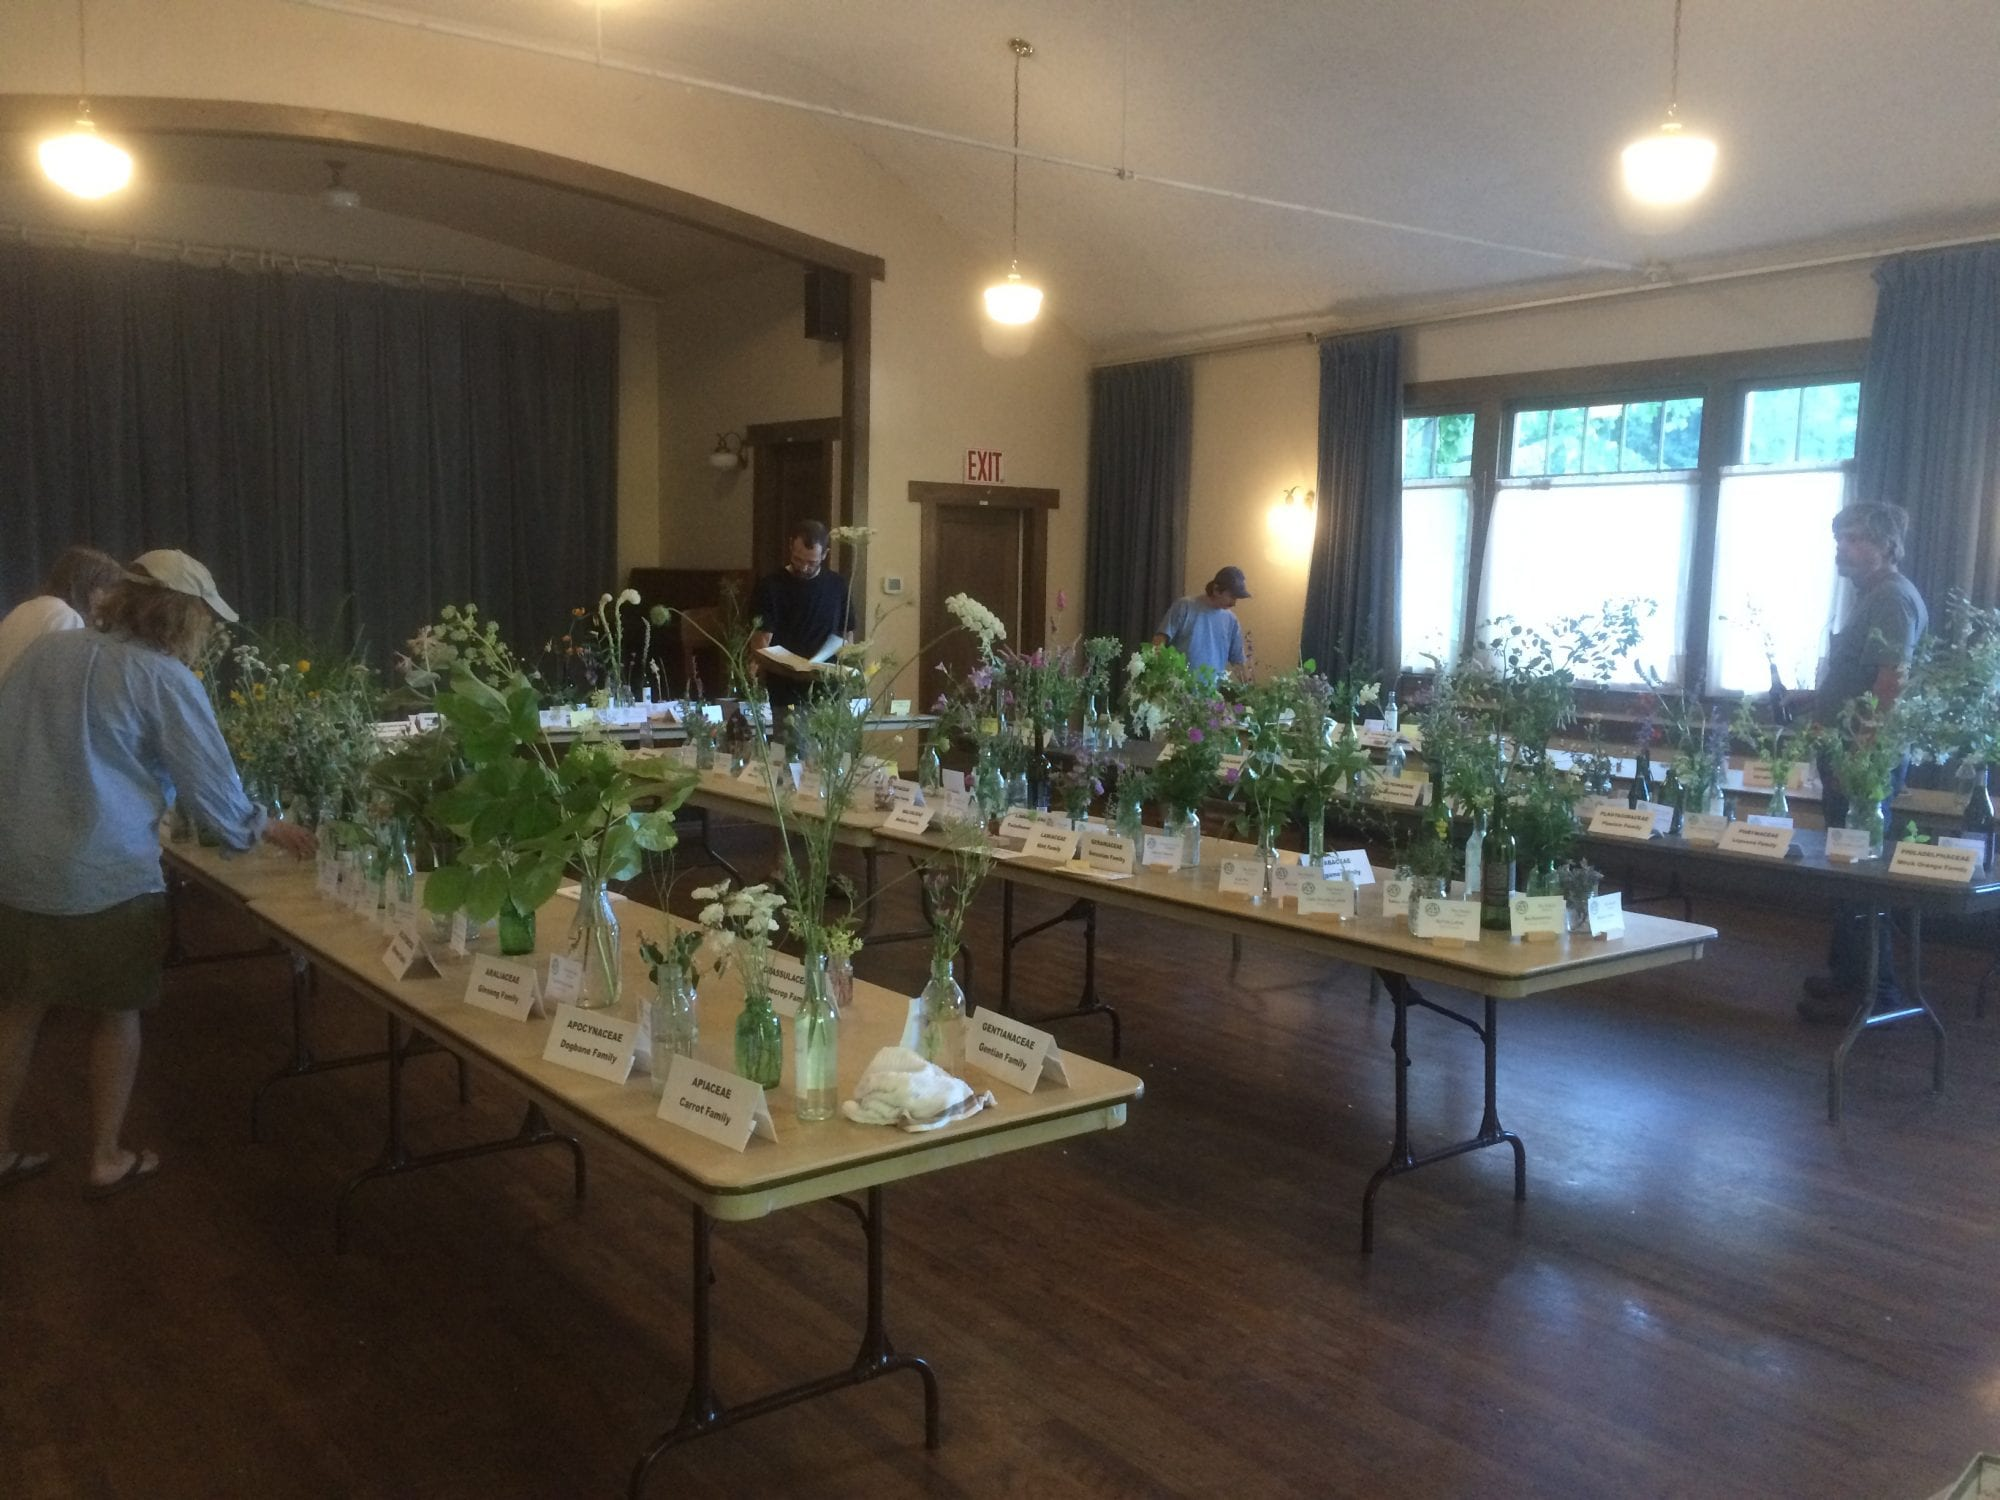 Irene Hollenbeck Memorial Wildflower Show